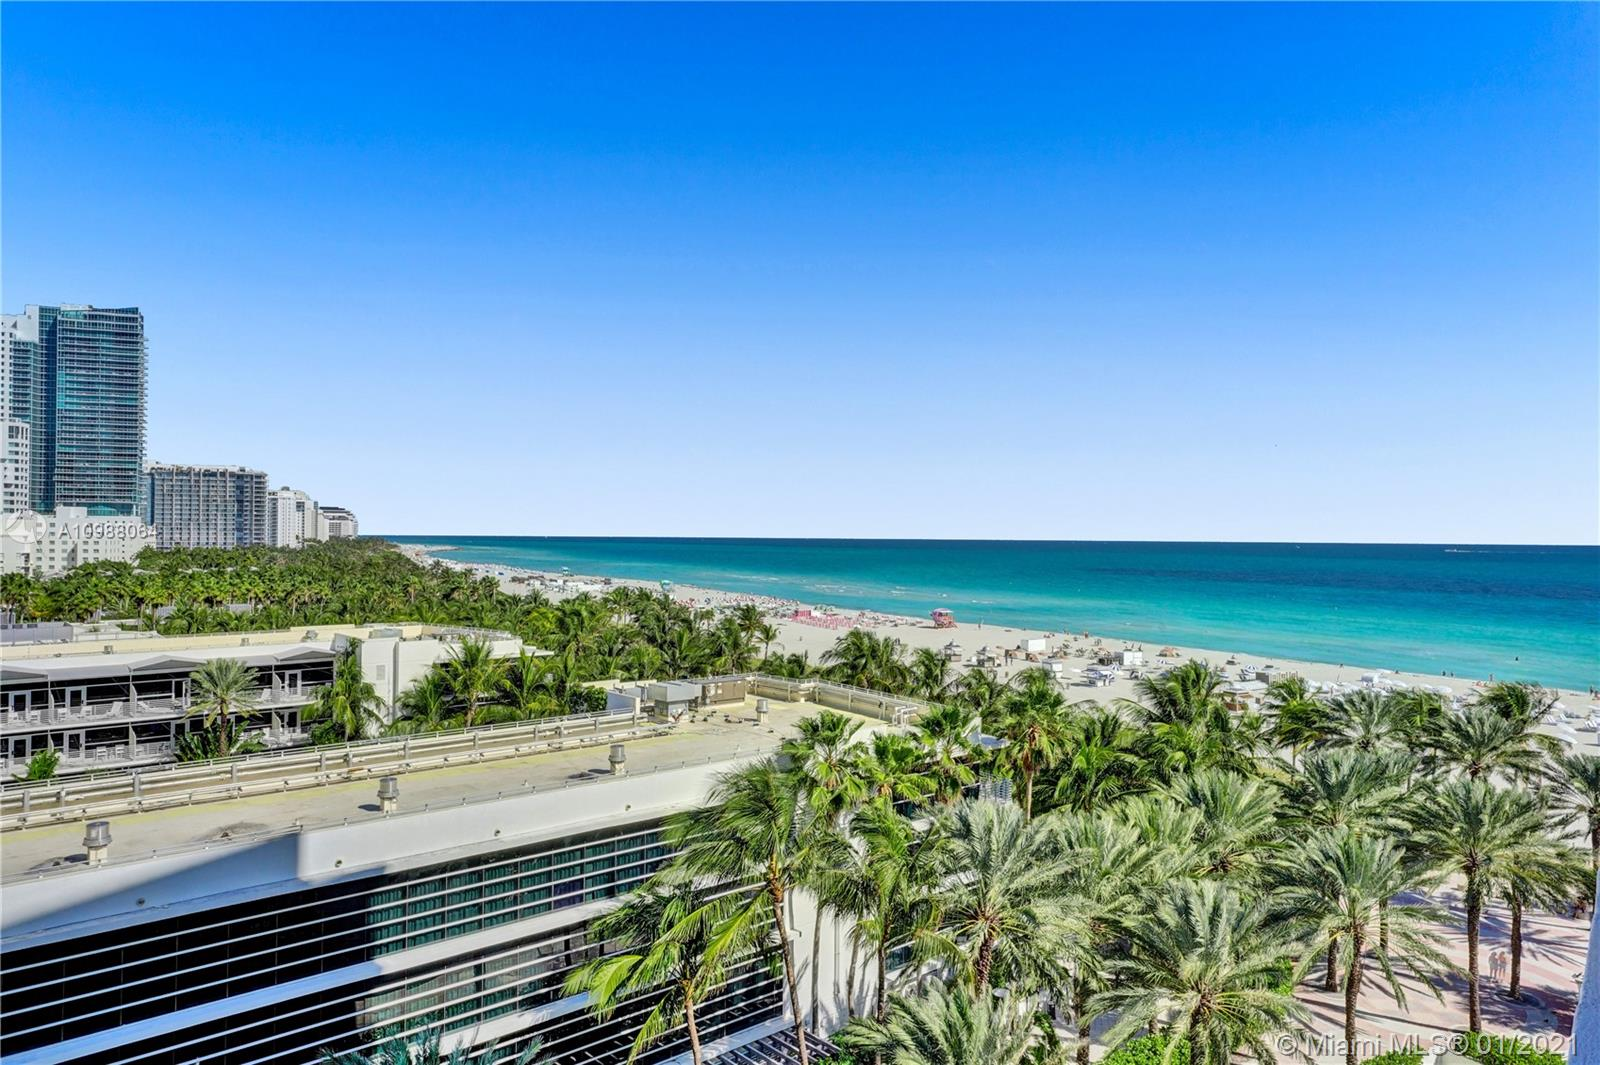 Exclusive South Beach address perfectly located where the ocean meets famous Lincoln Road! Oceanfront, 1 br 1 ba with large balcony, ocean & city views, bright & spacious, nice kitchen, washer / dryer in unit, impact windows and balcony door, Pergo flooring throughout and Marble floor in bathroom and tub/ shower, plenty of closet space, offered furnished. 1 parking and 1 valet. Private access to beach, gardens, heated pool. Well equipped building recently renovated. Features include beachfront gym, game room, new elevators, 24hr security, laundry on each floor, valet. Maintenance includes A /C, water, cable and internet. Rentals allowed for 30 days. Walk to hot spots, restaurants, attractions, and museums. Pamper yourself in luxurious style in one of the most beautiful places in the world.